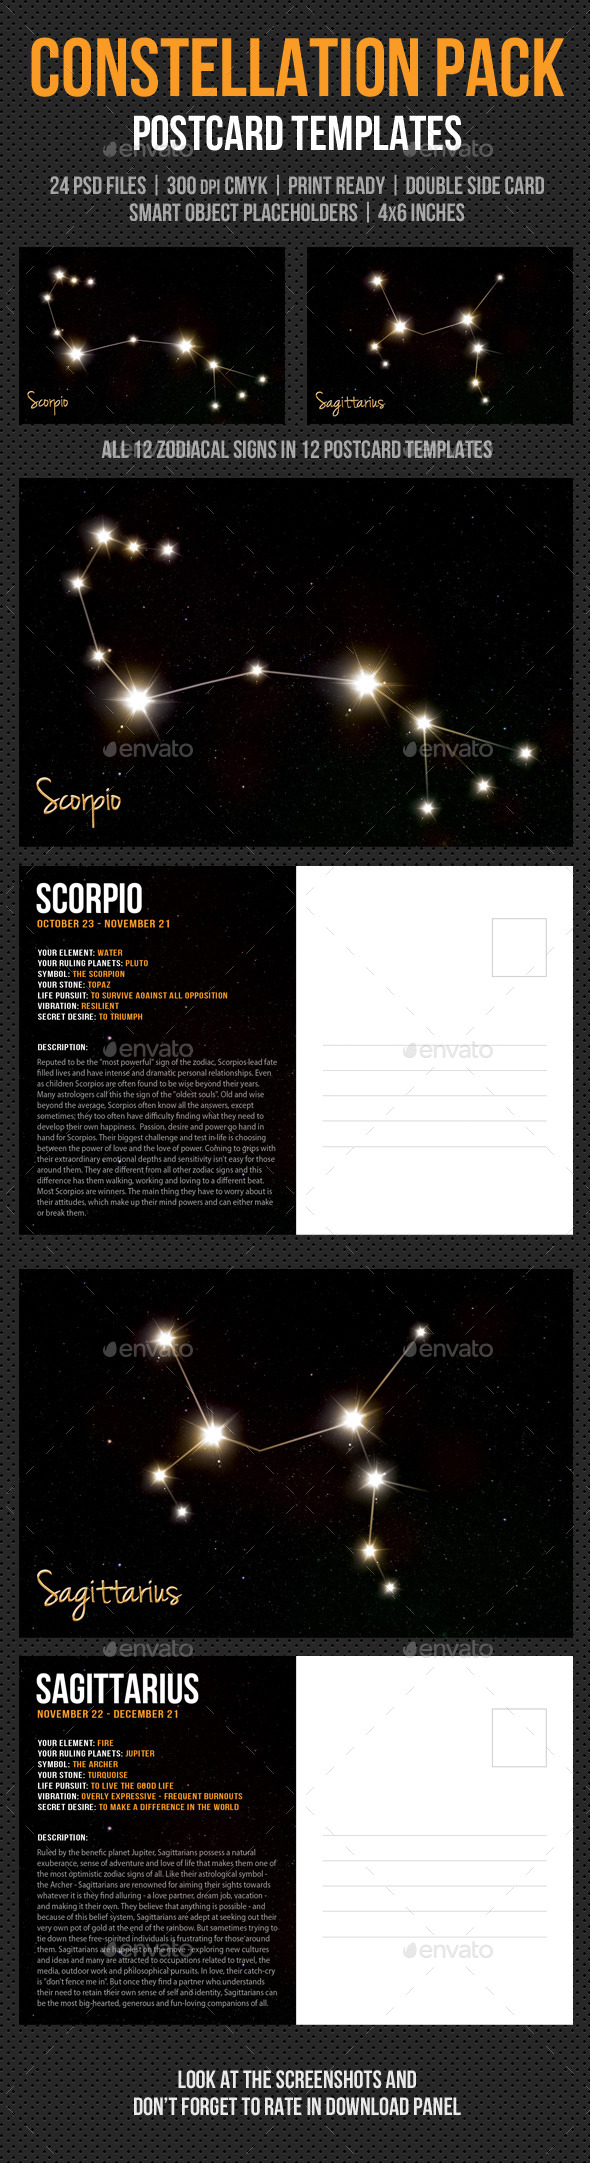 Constellation Postcard Pack - Cards & Invites Print Templates